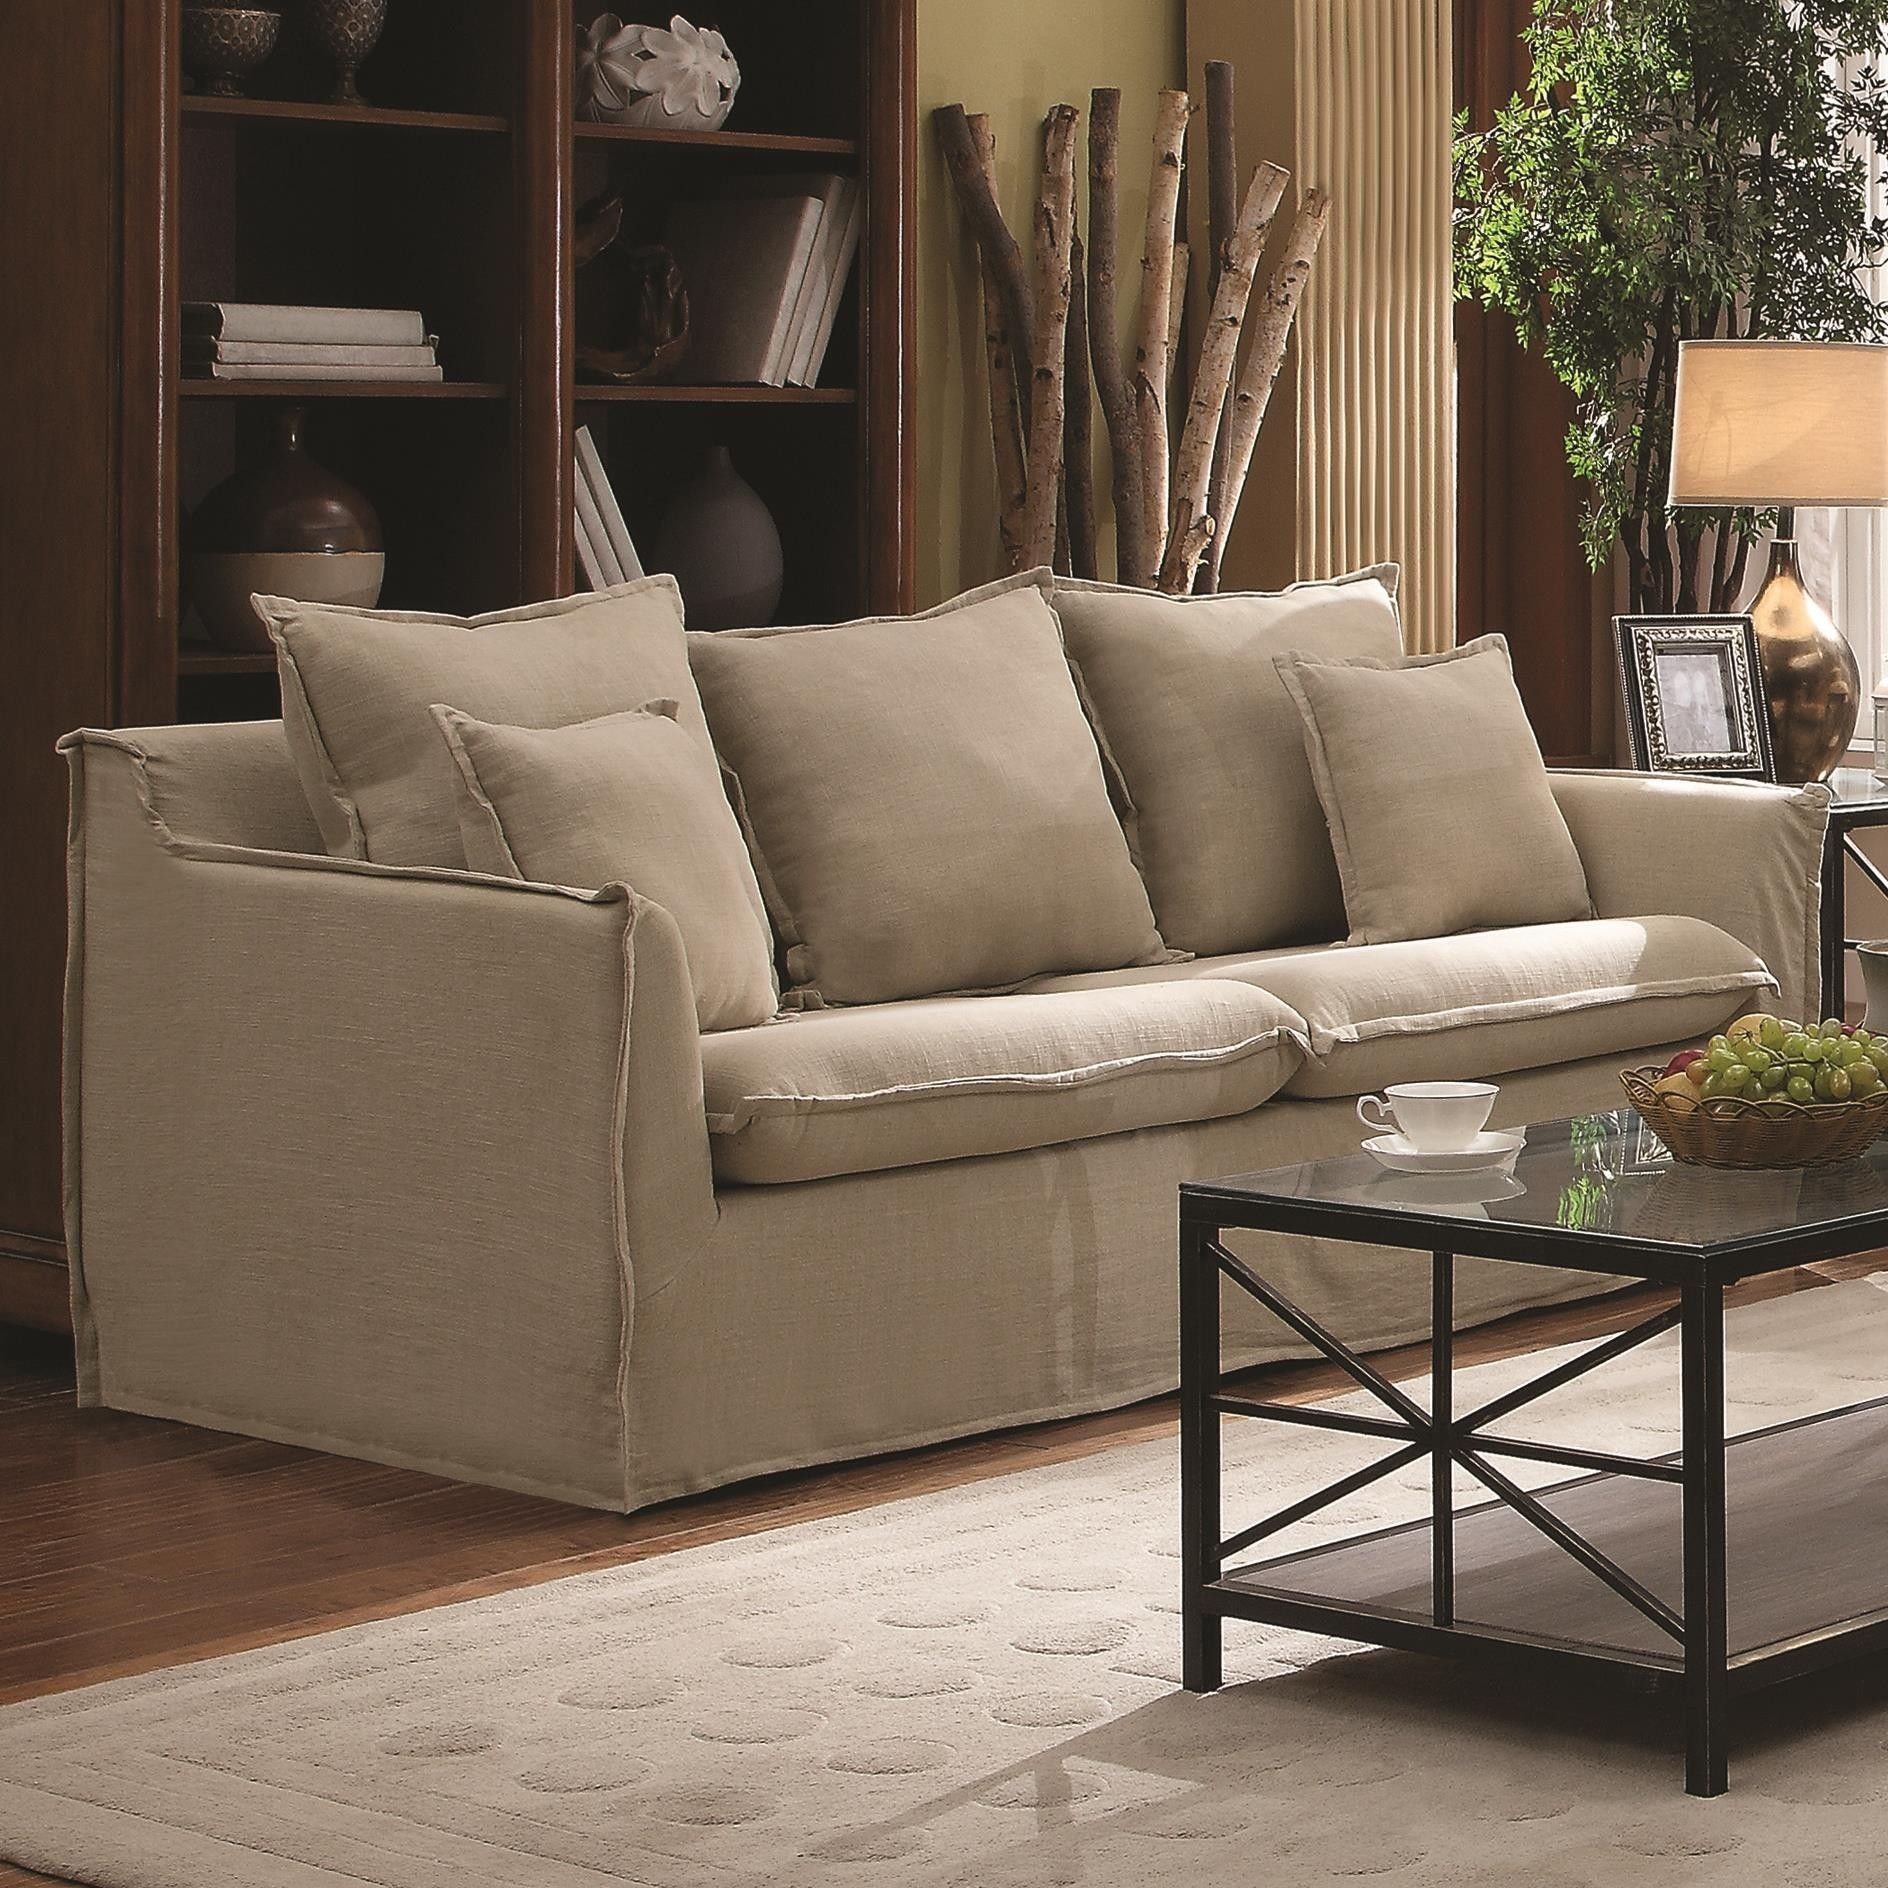 Nice Washable Slipcovered Sofas Awesome 45 About Remodel Contemporary Sofa Inspiration With